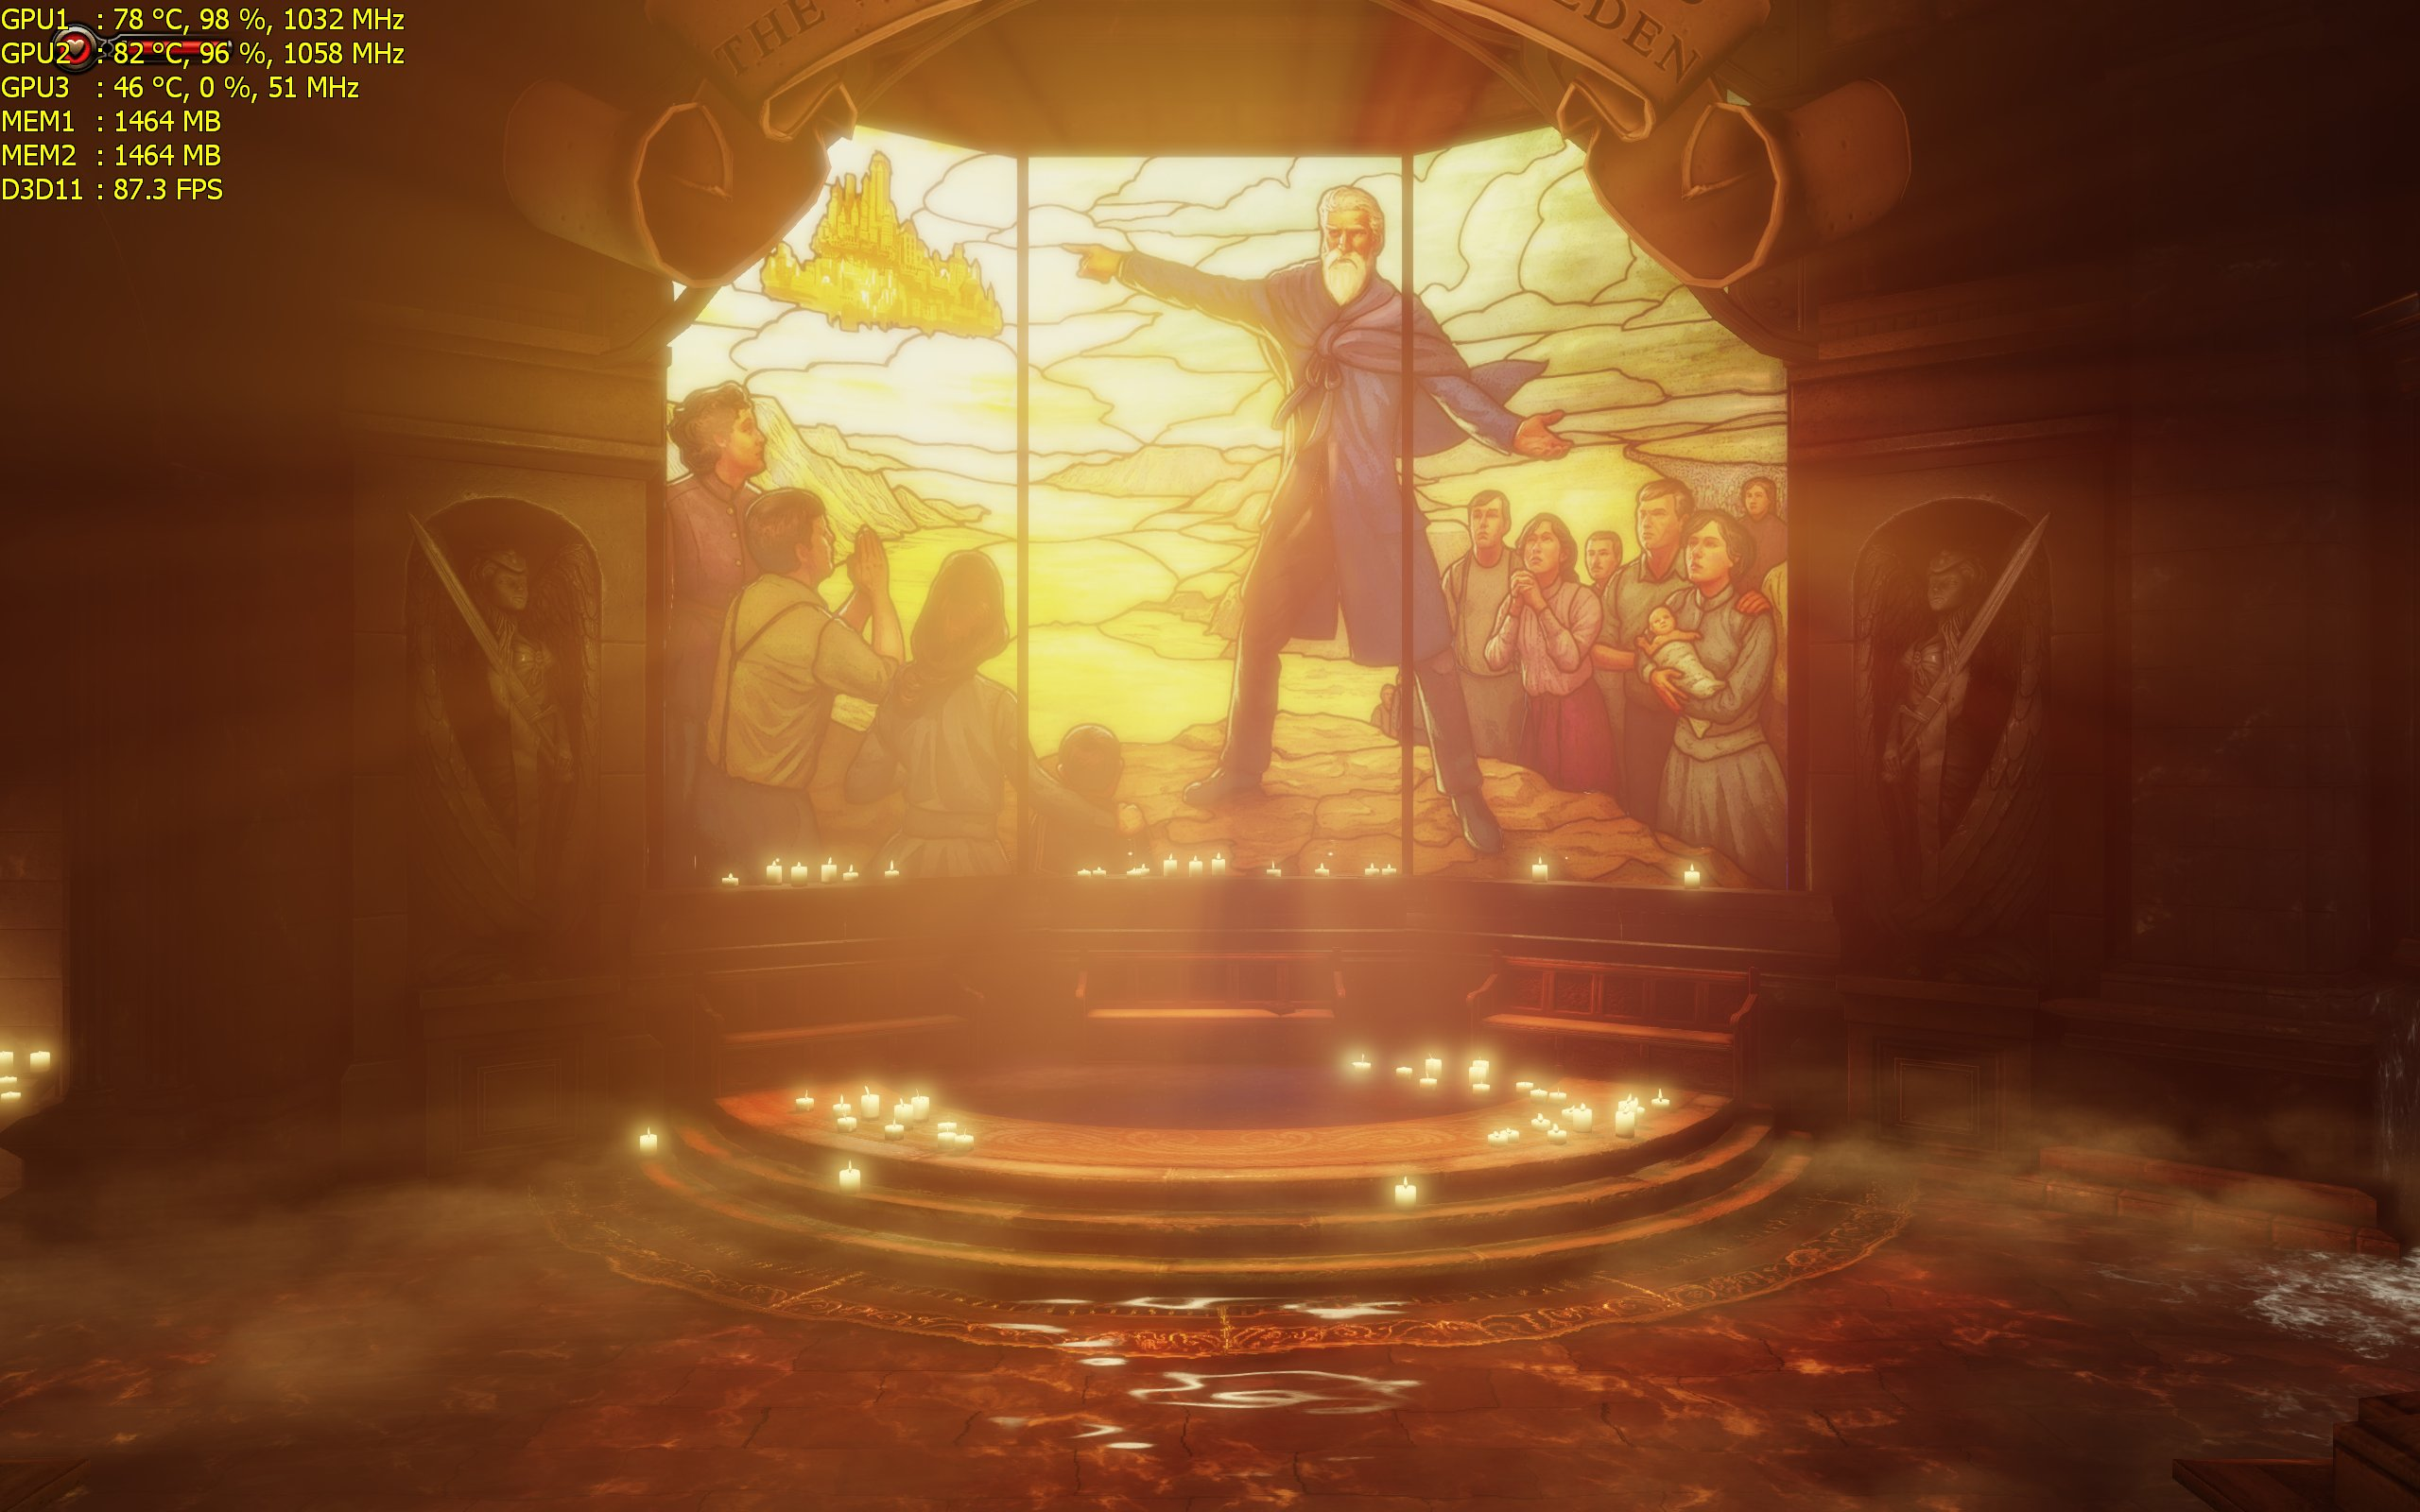 BioShockInfinite 2013_03_25_22_48_43_315